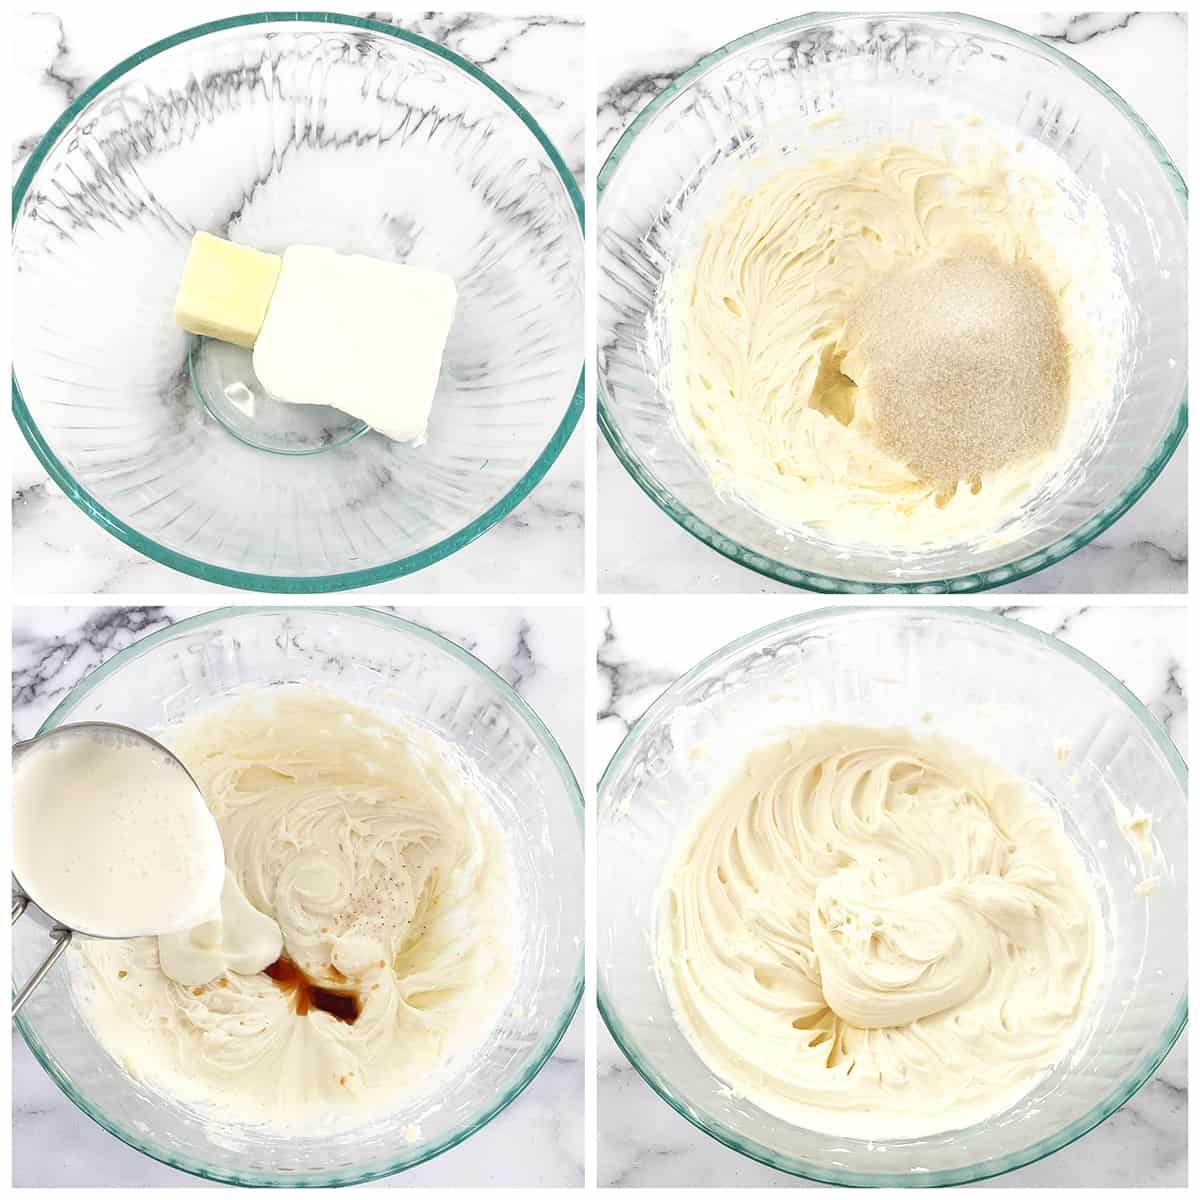 How to make the Cinnamon Rolls Cream Cheese Frosting